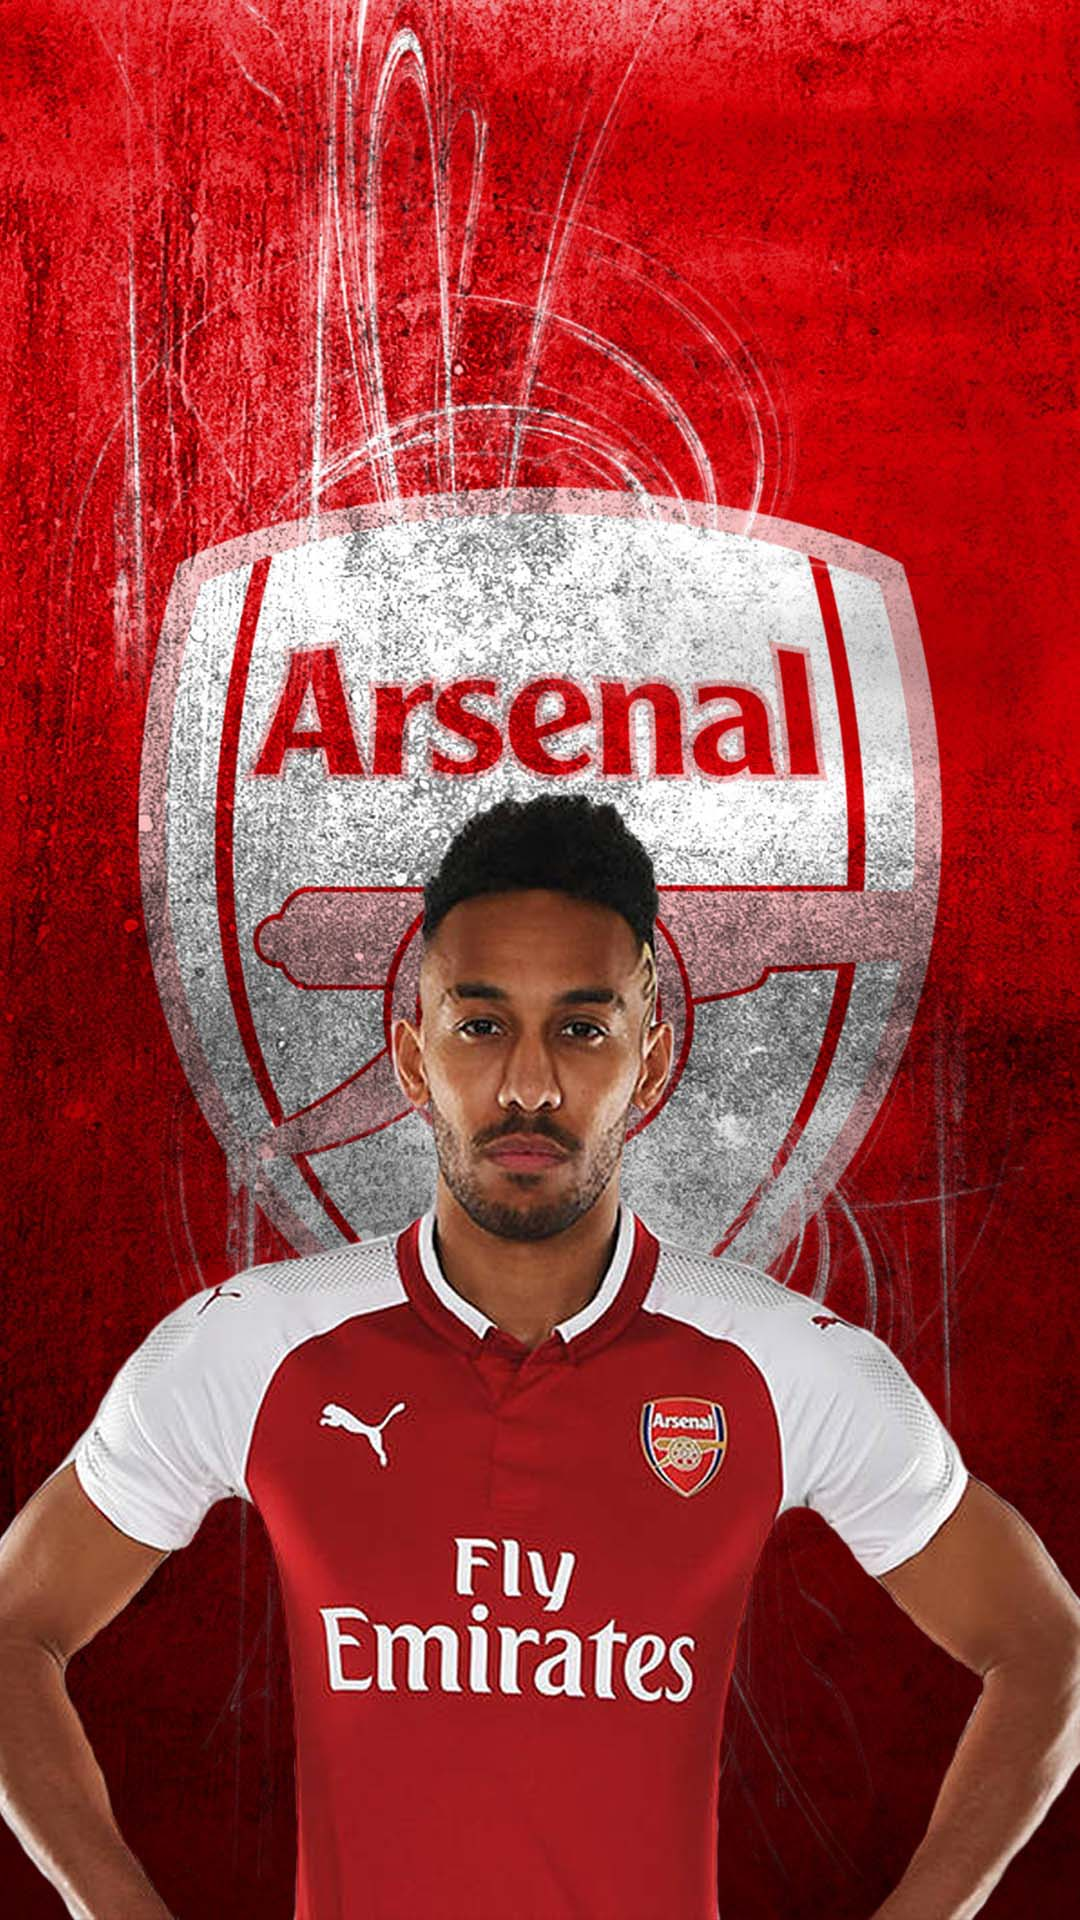 Aubameyang Arsenal Android Wallpaper   2020 Android Wallpapers 1080x1920